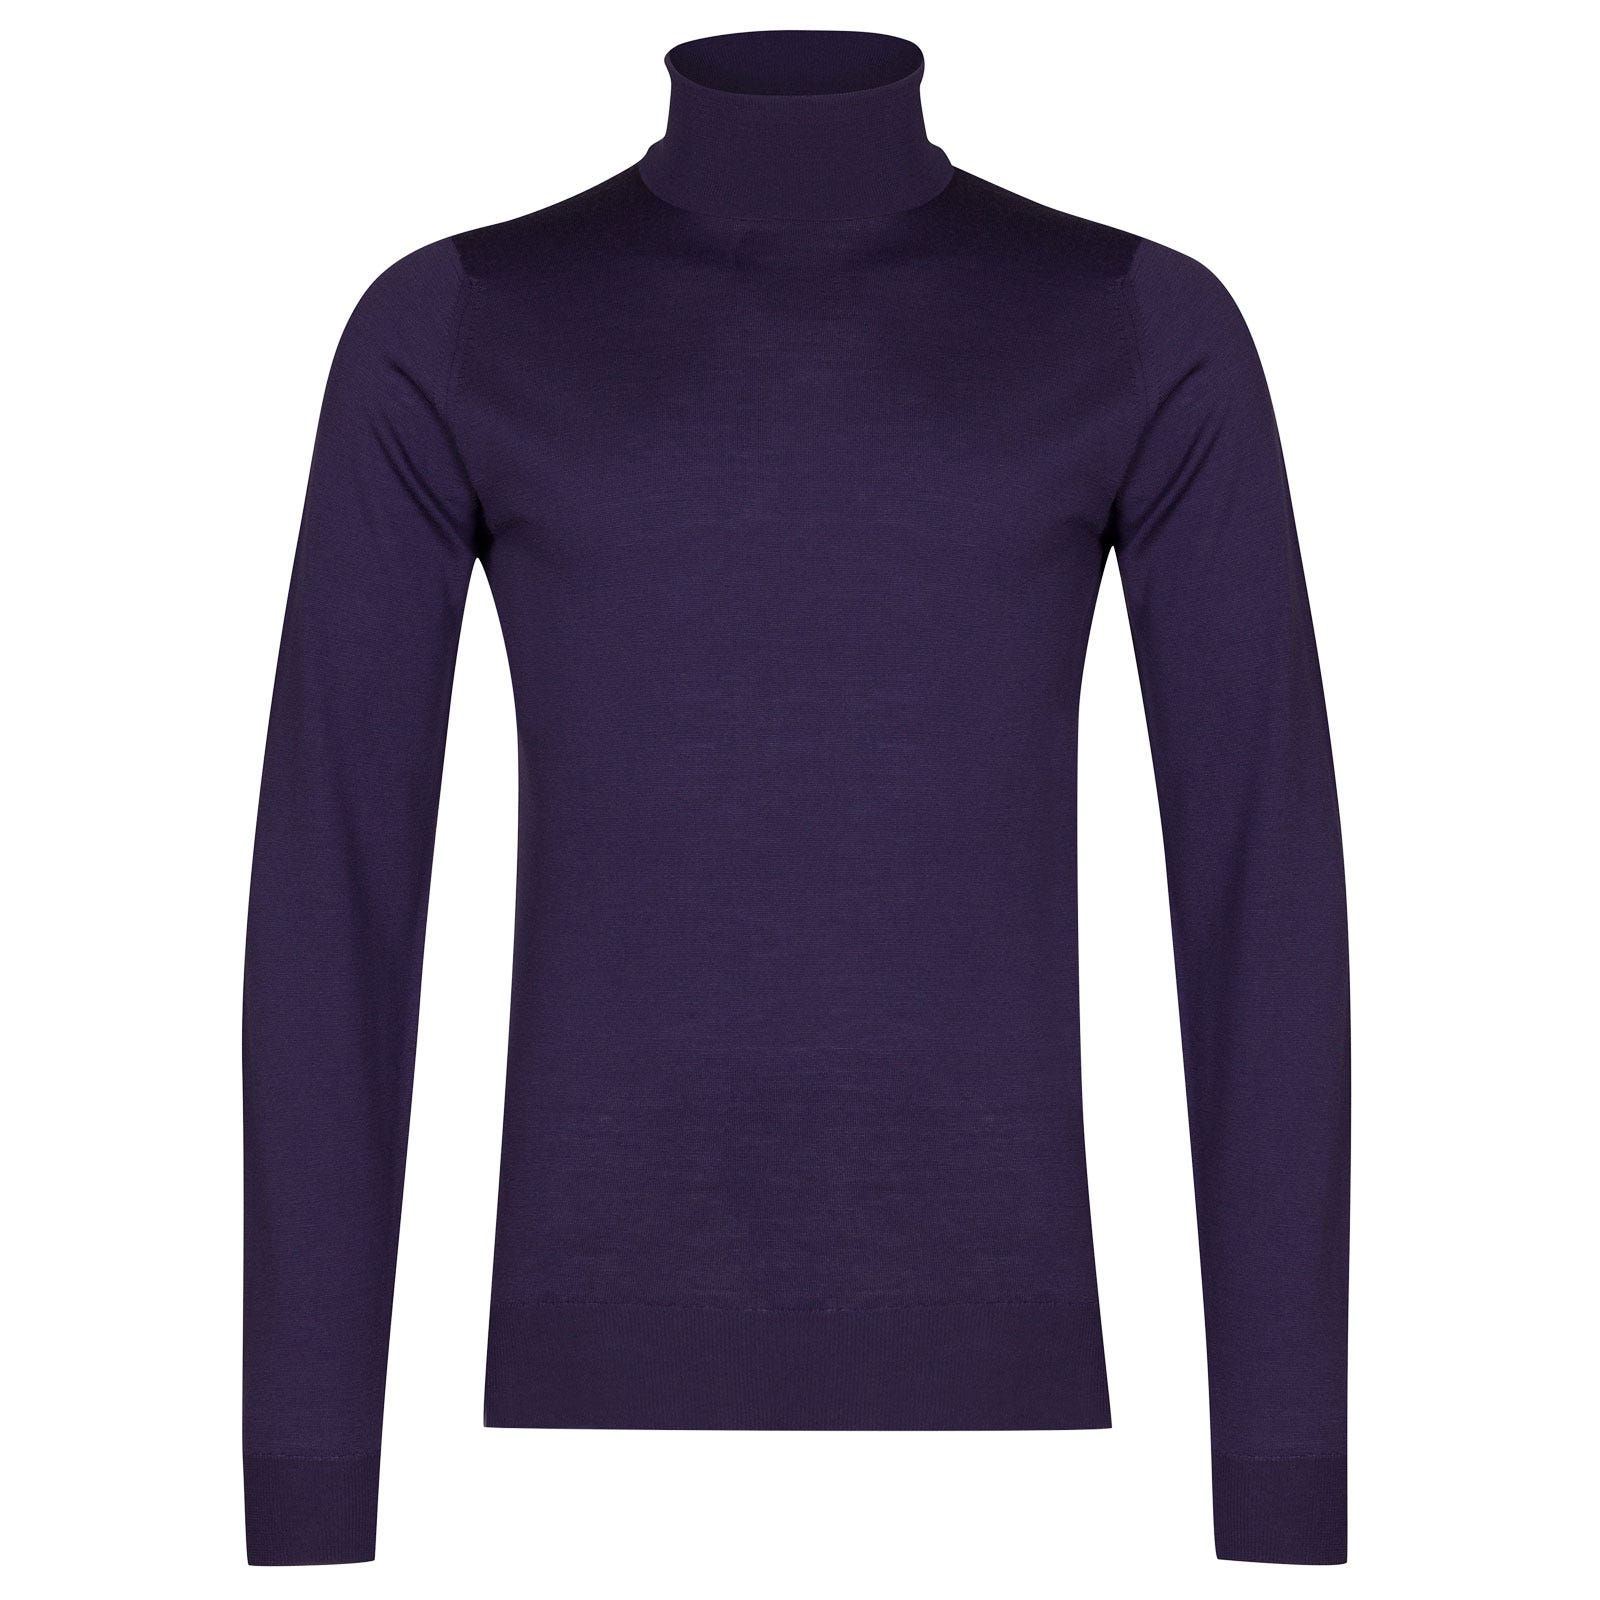 John Smedley cherwell Merino Wool Pullover in Elderberry Purple-M